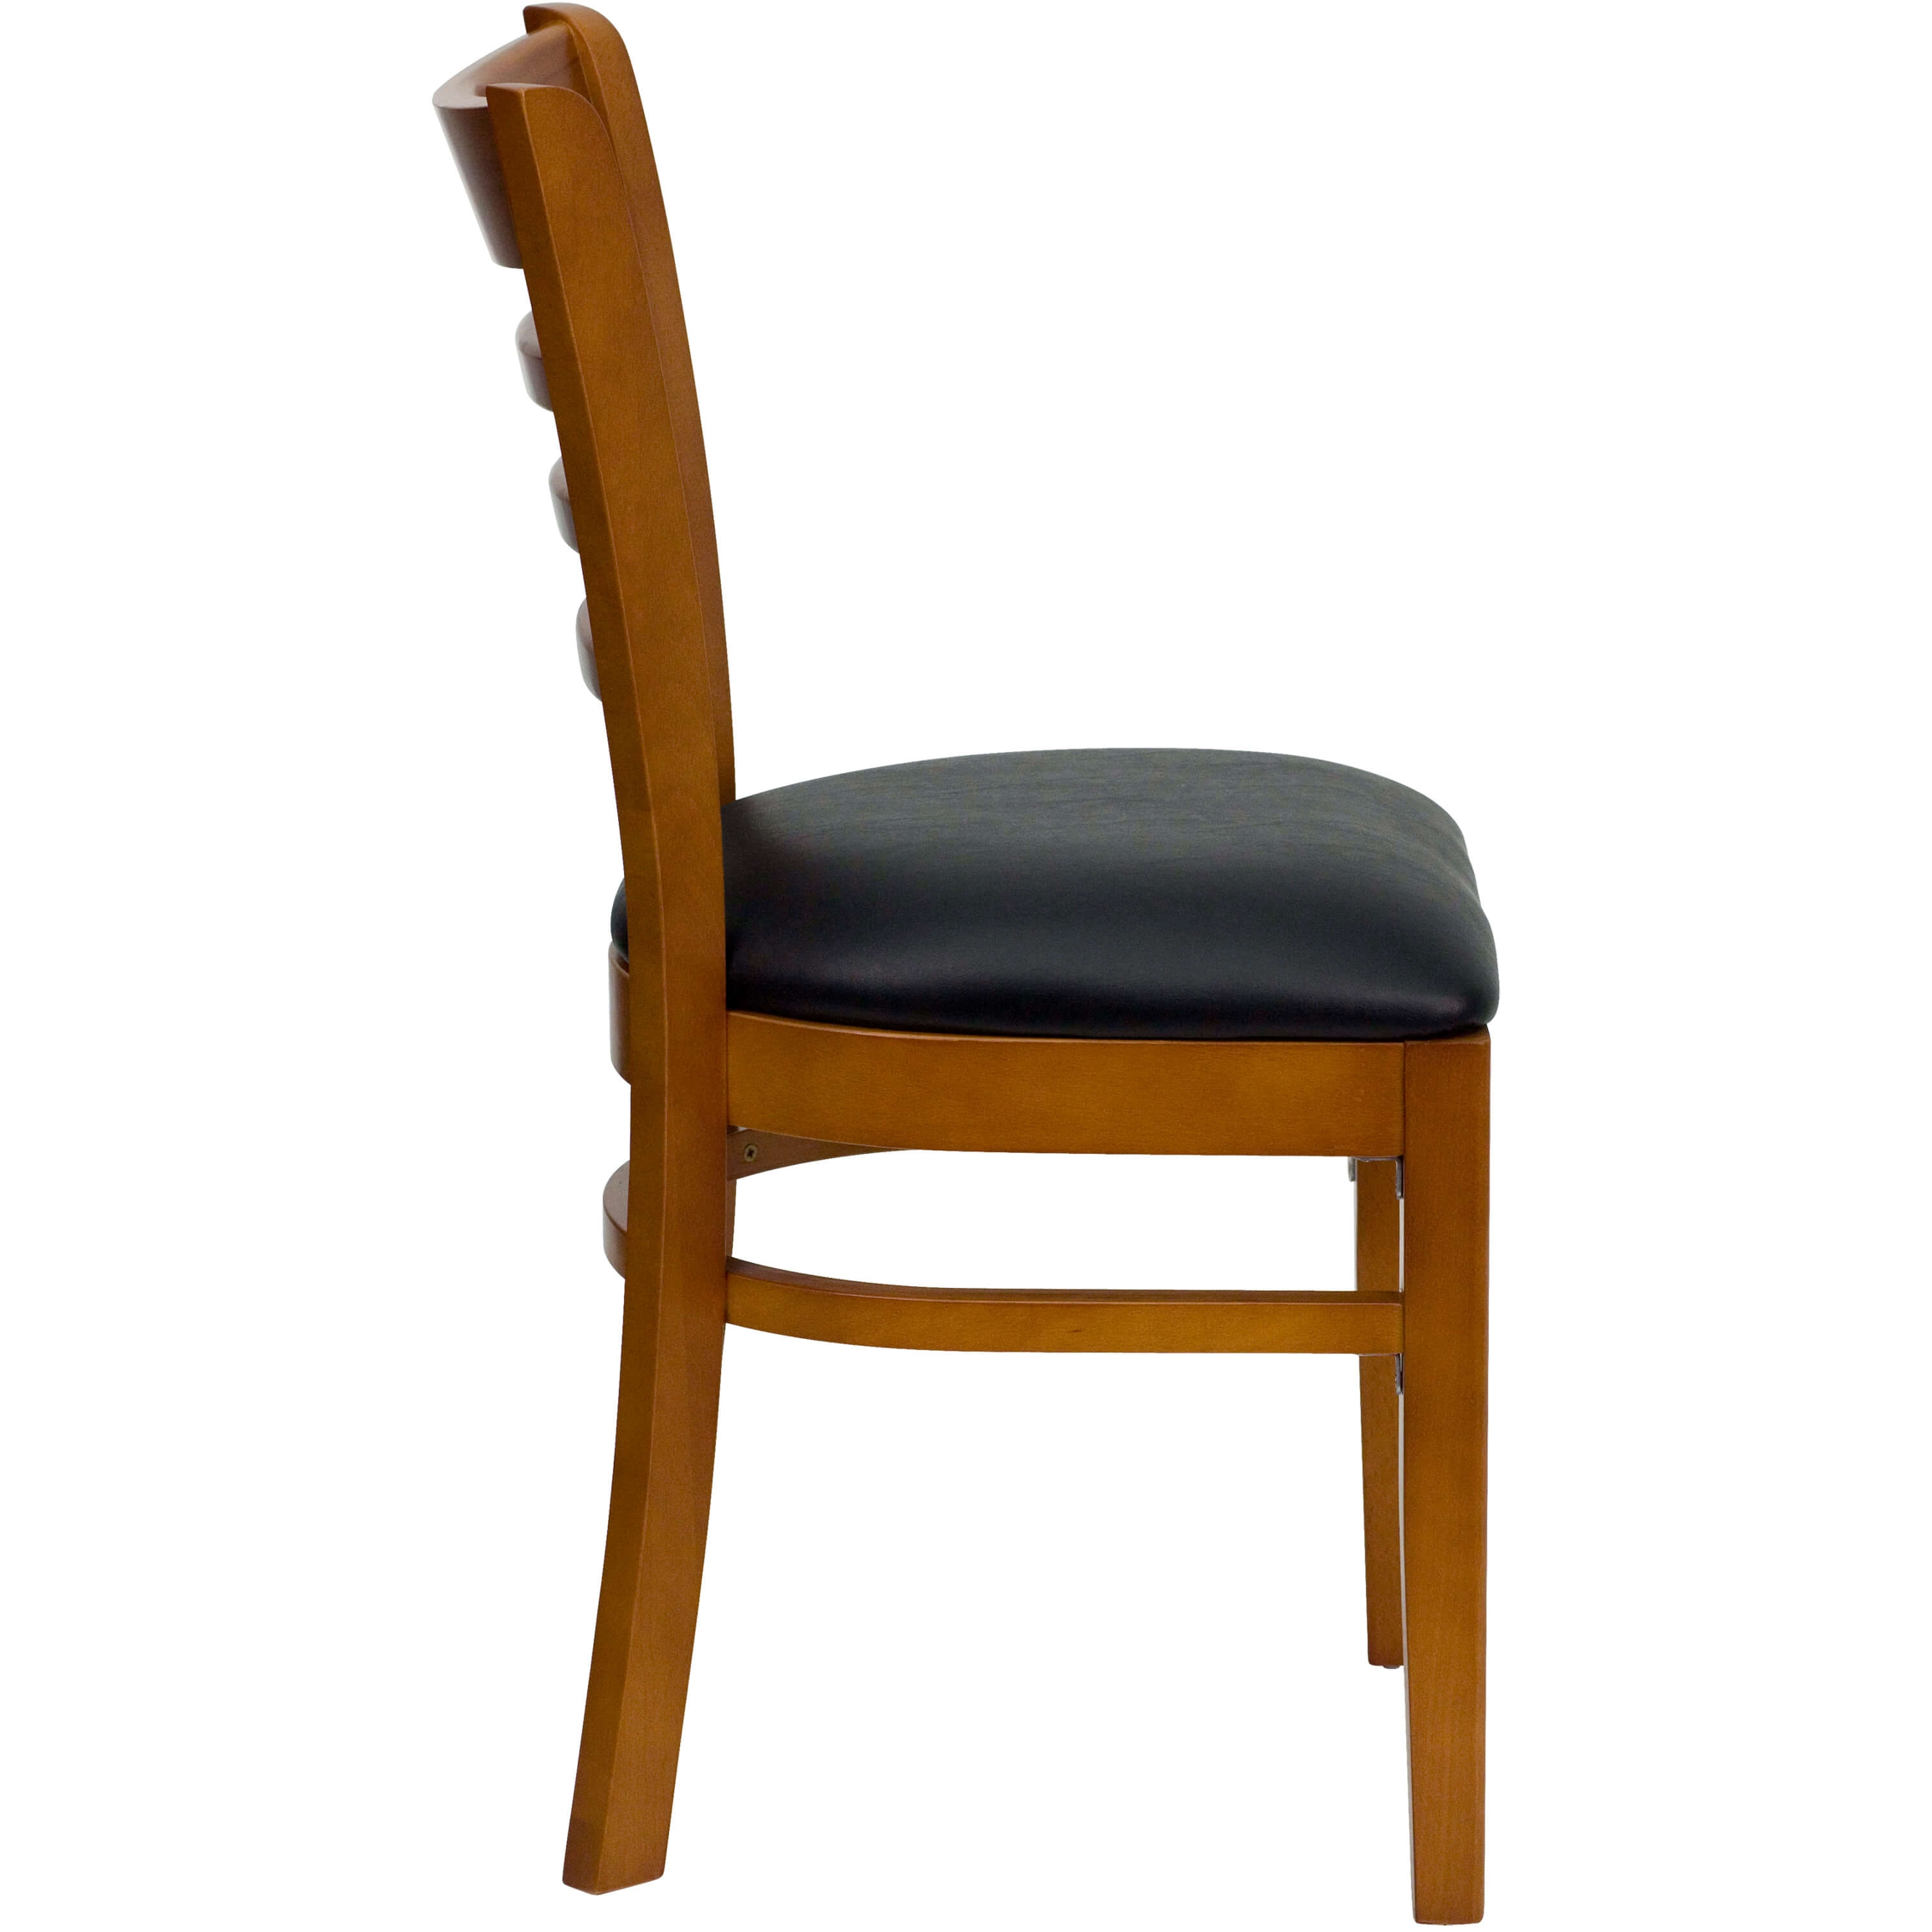 Ladder back wooden dining chair side view